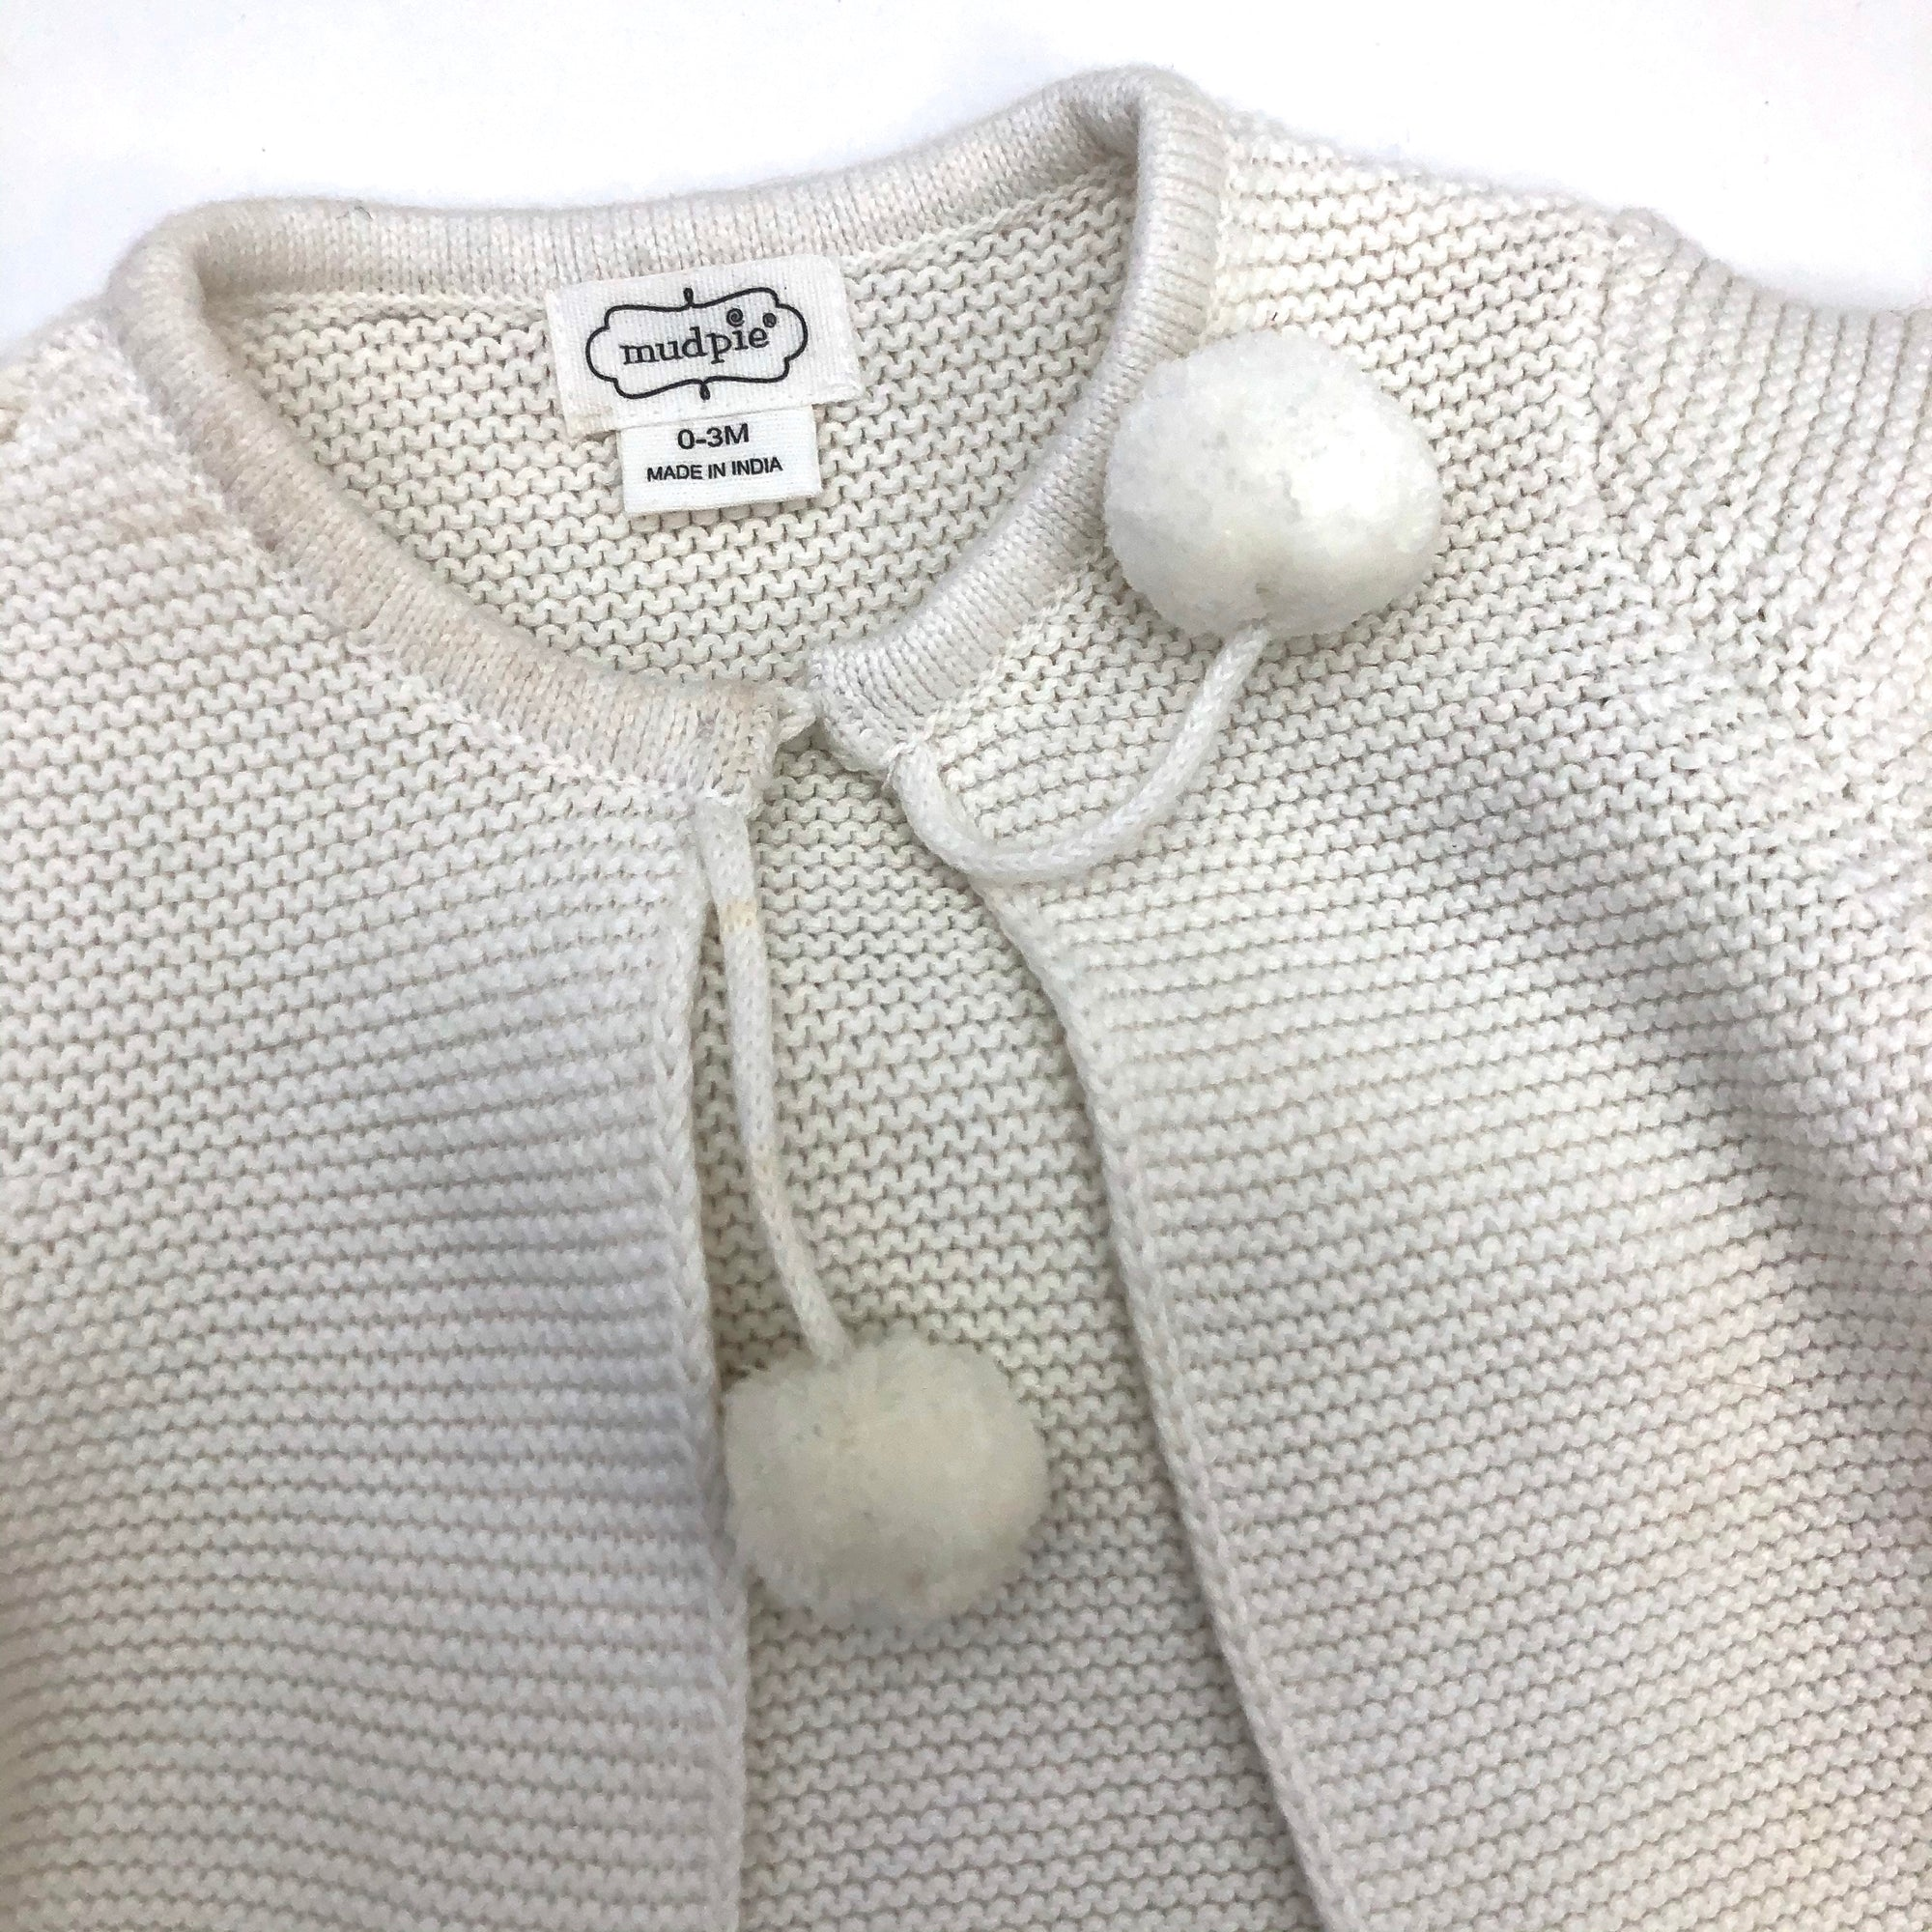 Resale 0-3 m Mudpie Pom Pom White Sweater and Pant Set